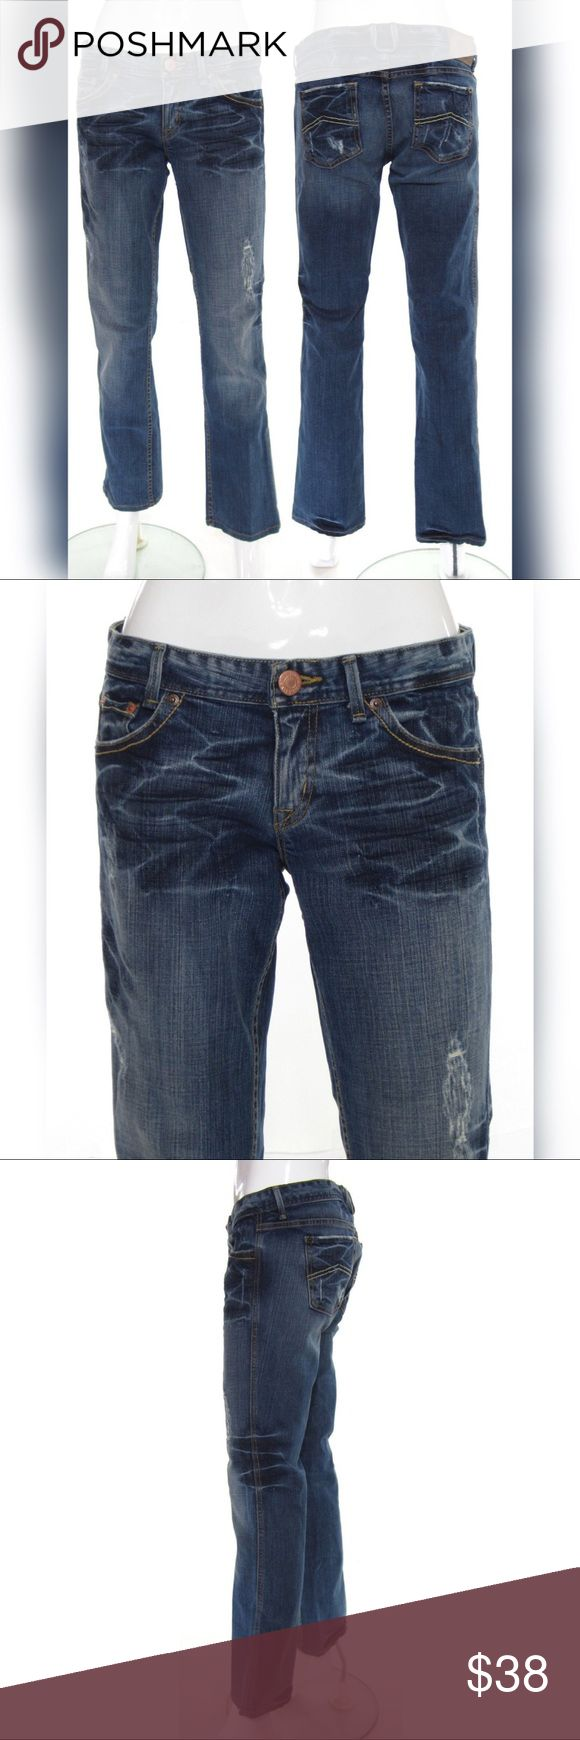 "Armani Exchange Distressed Jeans 8 Fits 6 Featuring a low 8 1/8"" rise and a slim straight cut through the leg. Wash is called Light Destroy, a medium blue featuring intense intentional fading/whiskering/wash effects and distressing throughout.   98% Cotton 2% Spandex-high quality stretch denim! Made in the USA!   Tagged as a ladies size 8 but these run a full size small and would be best suited for a true contemporary US ladies size 6/28"" (Small). Hemmed to an inseam length of 29 3/4""…"